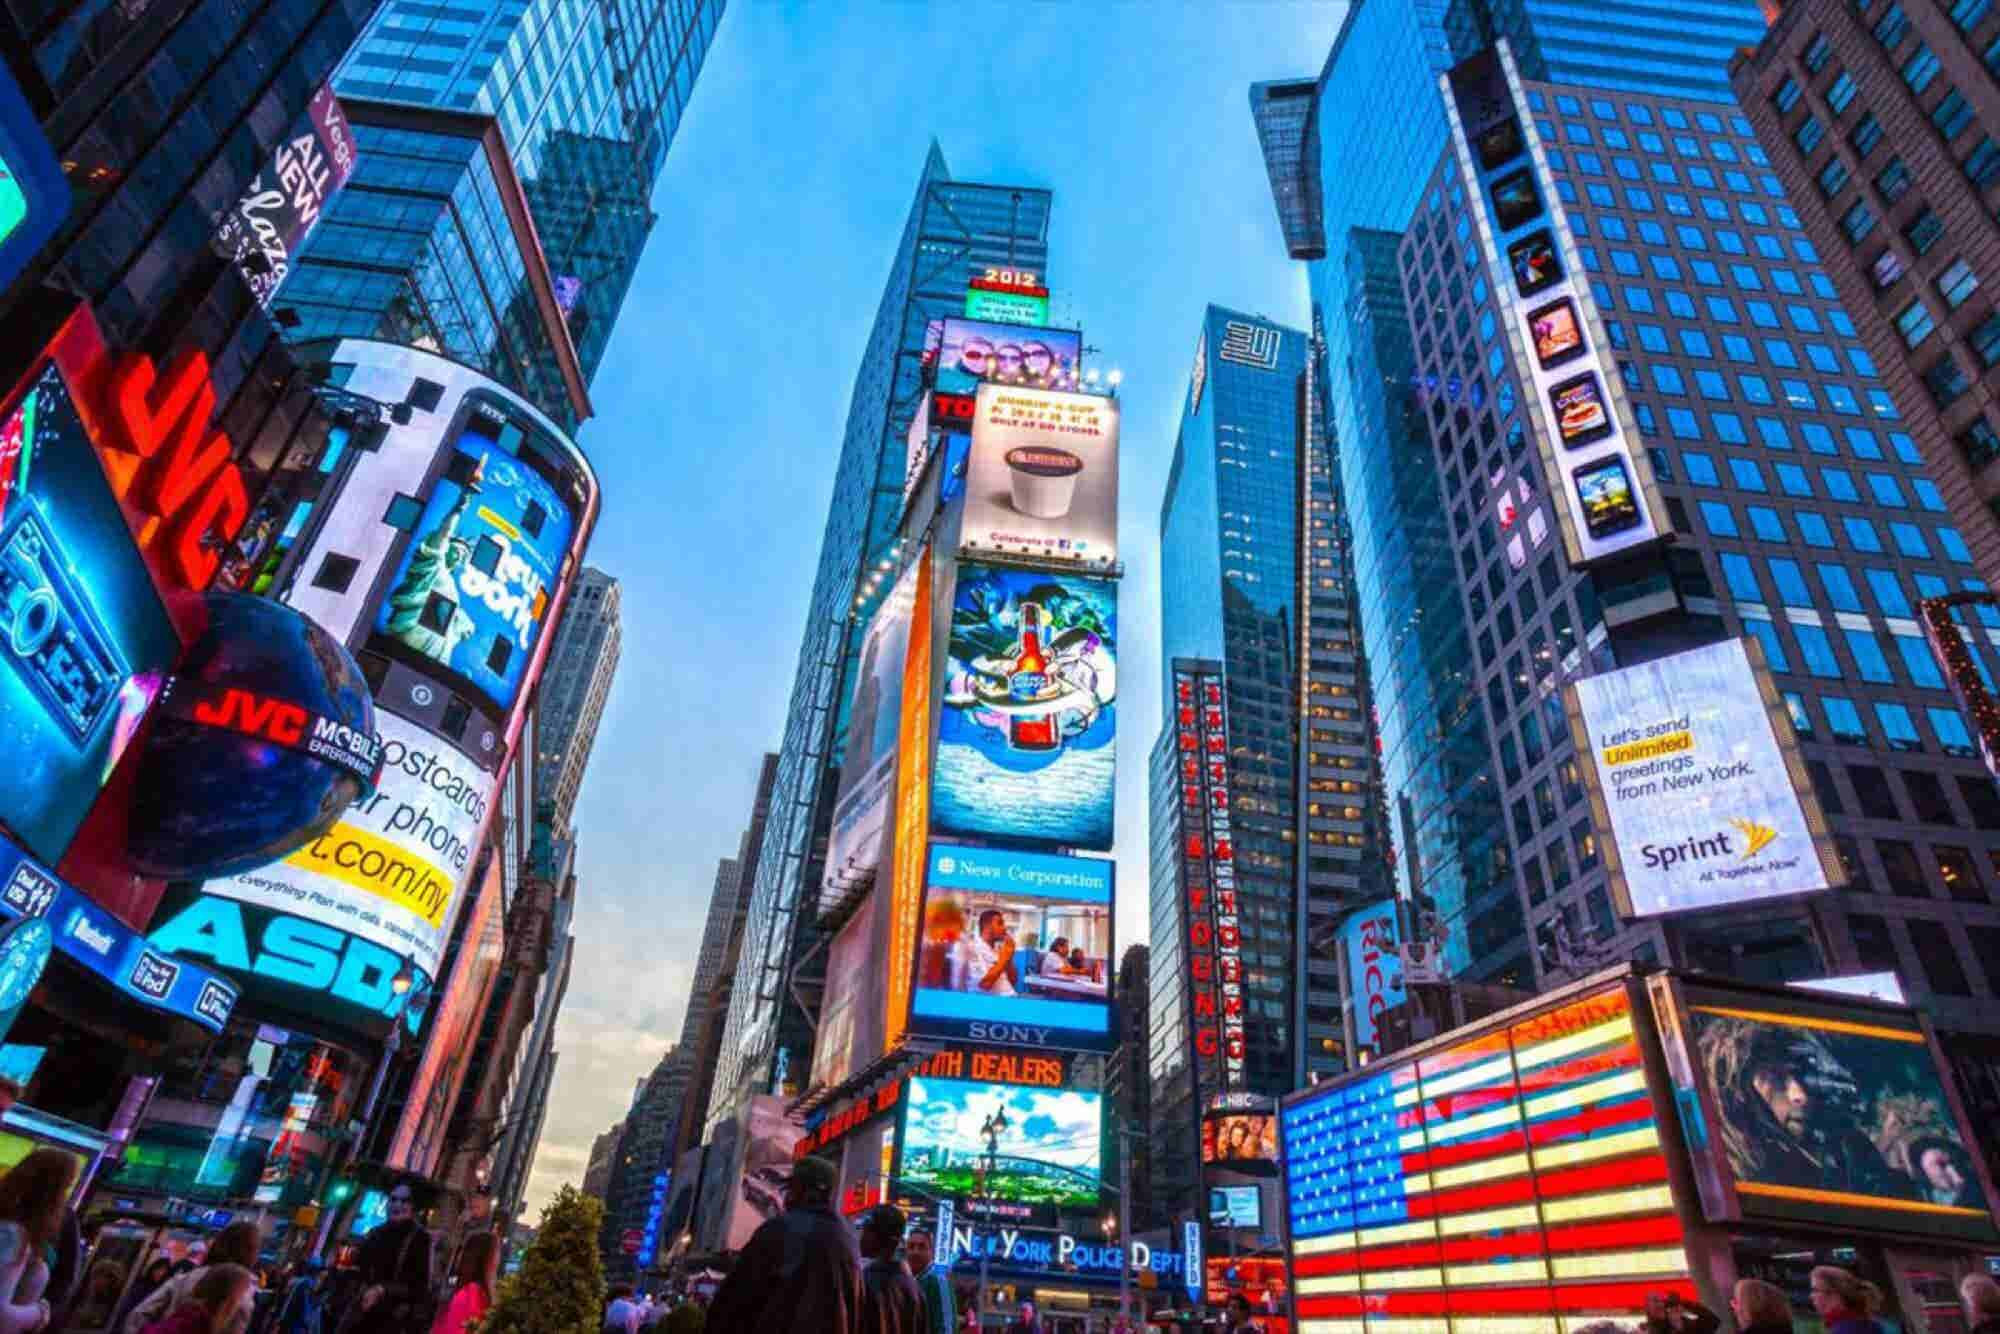 Google Launches Interactive Games on Times Square's Biggest Billboard Ever